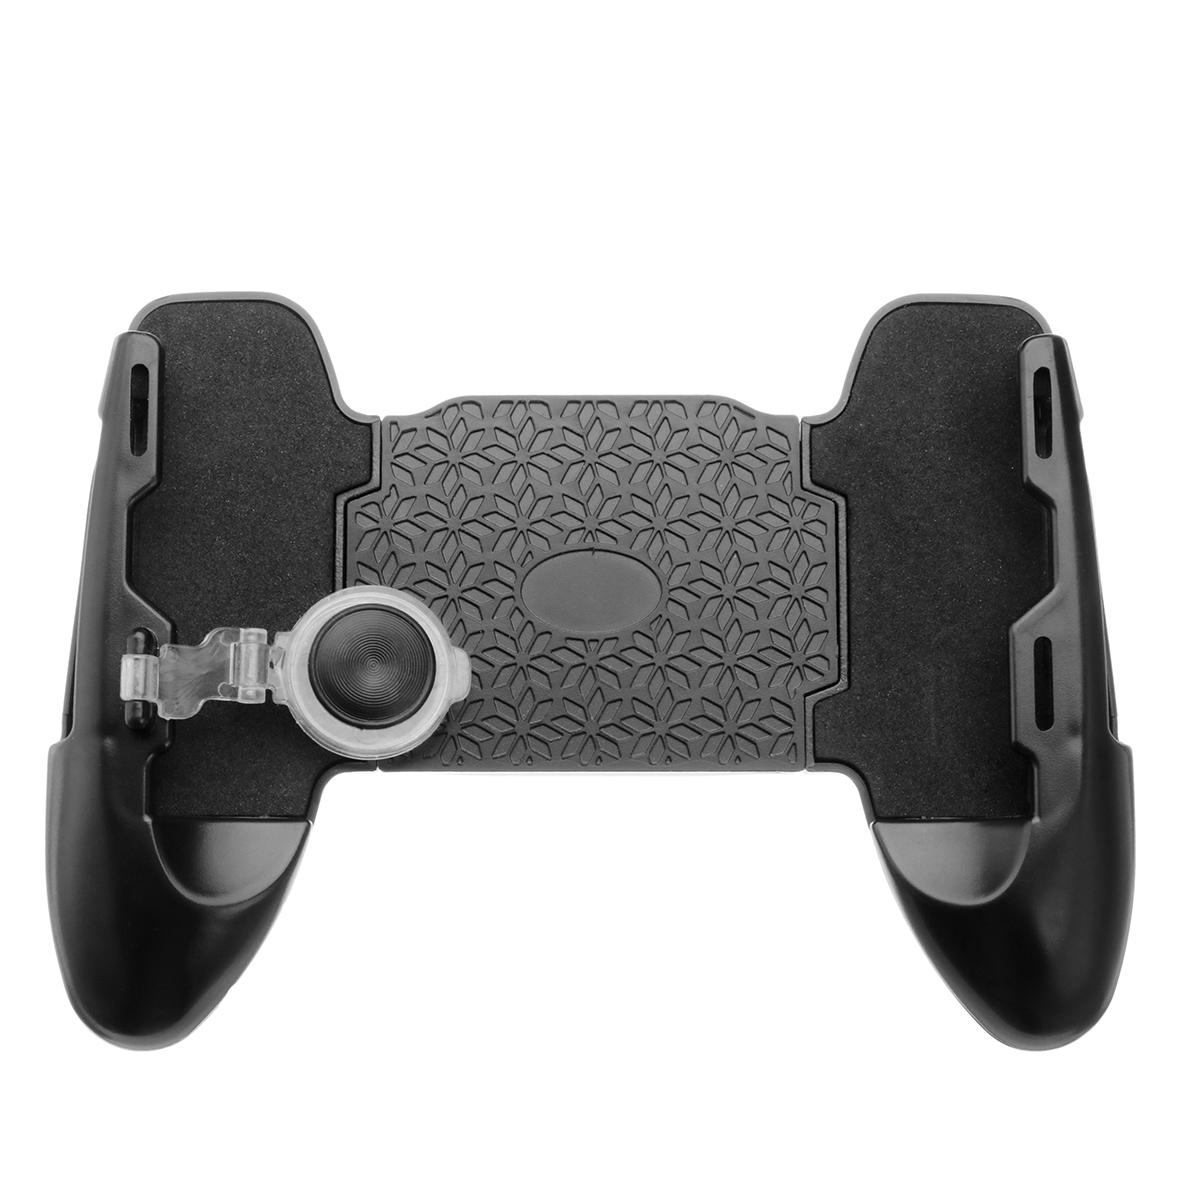 Bakeey Jl 01 3 In 1 Built In Bracket Game Controller Joystick